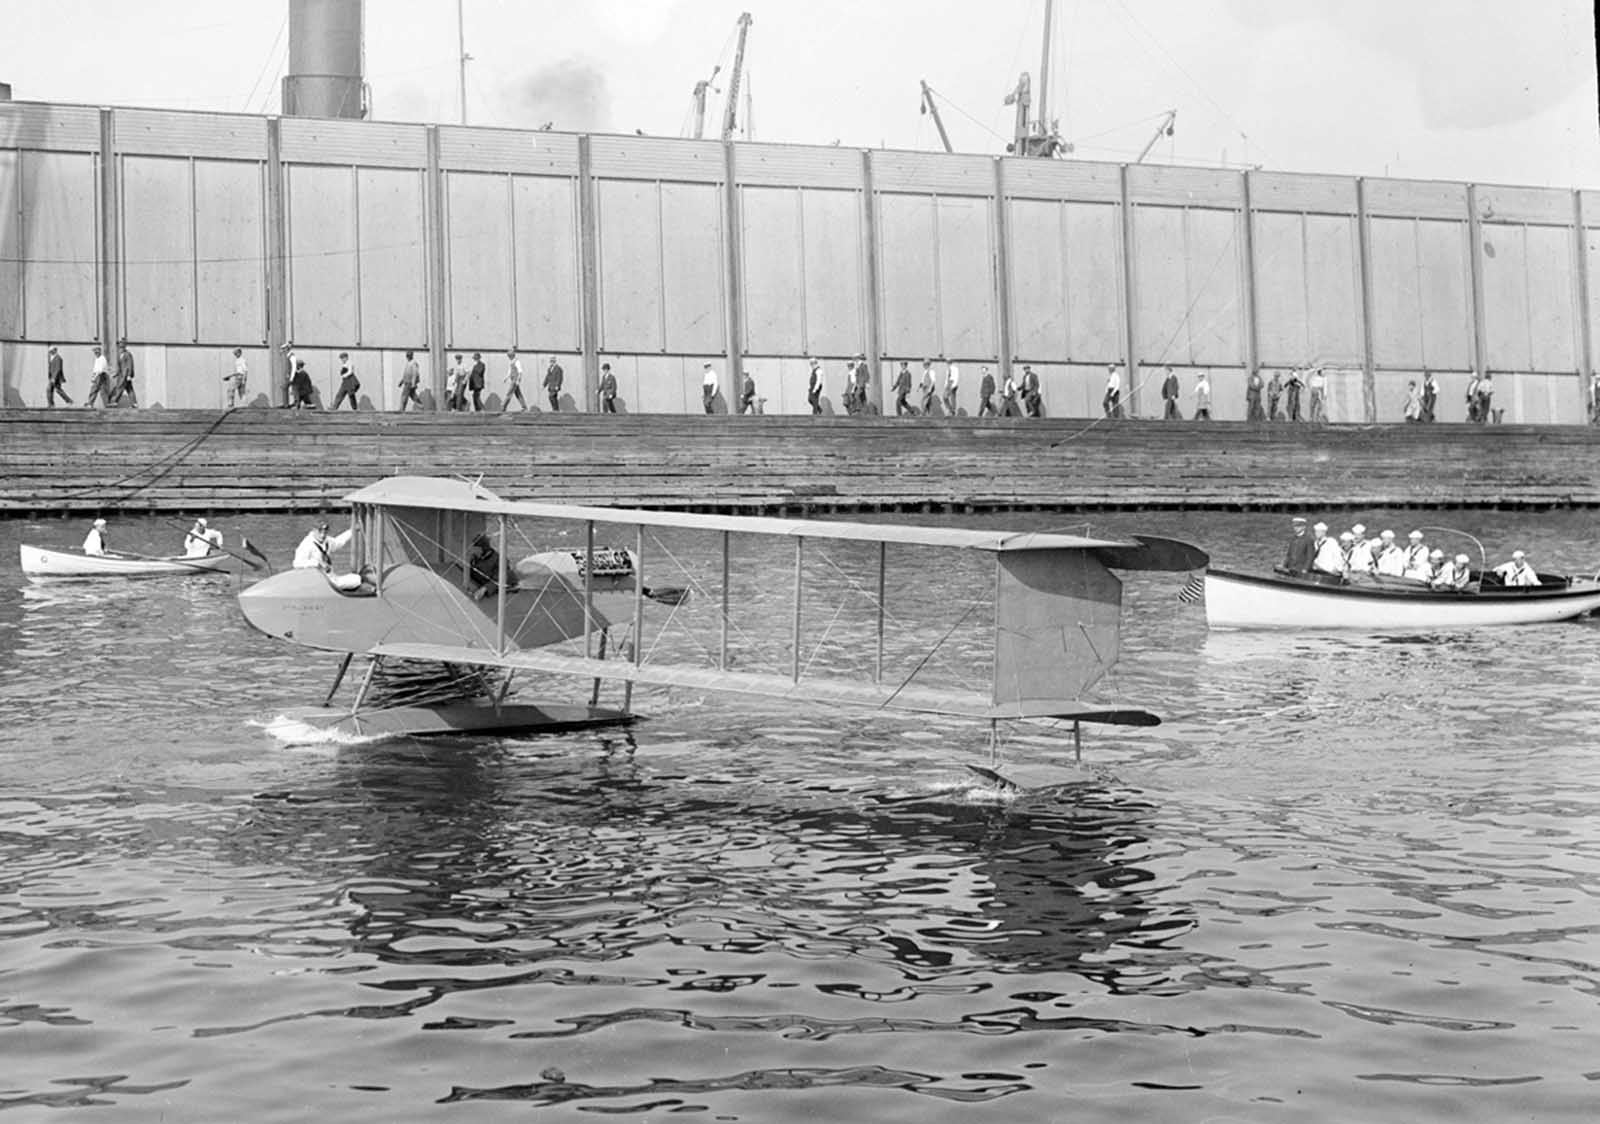 The Burgess Seaplane, a variant of the Dunne D.8, a tailless swept-wing biplane, in New York, being used by the New York Naval Militia, ca 1918.